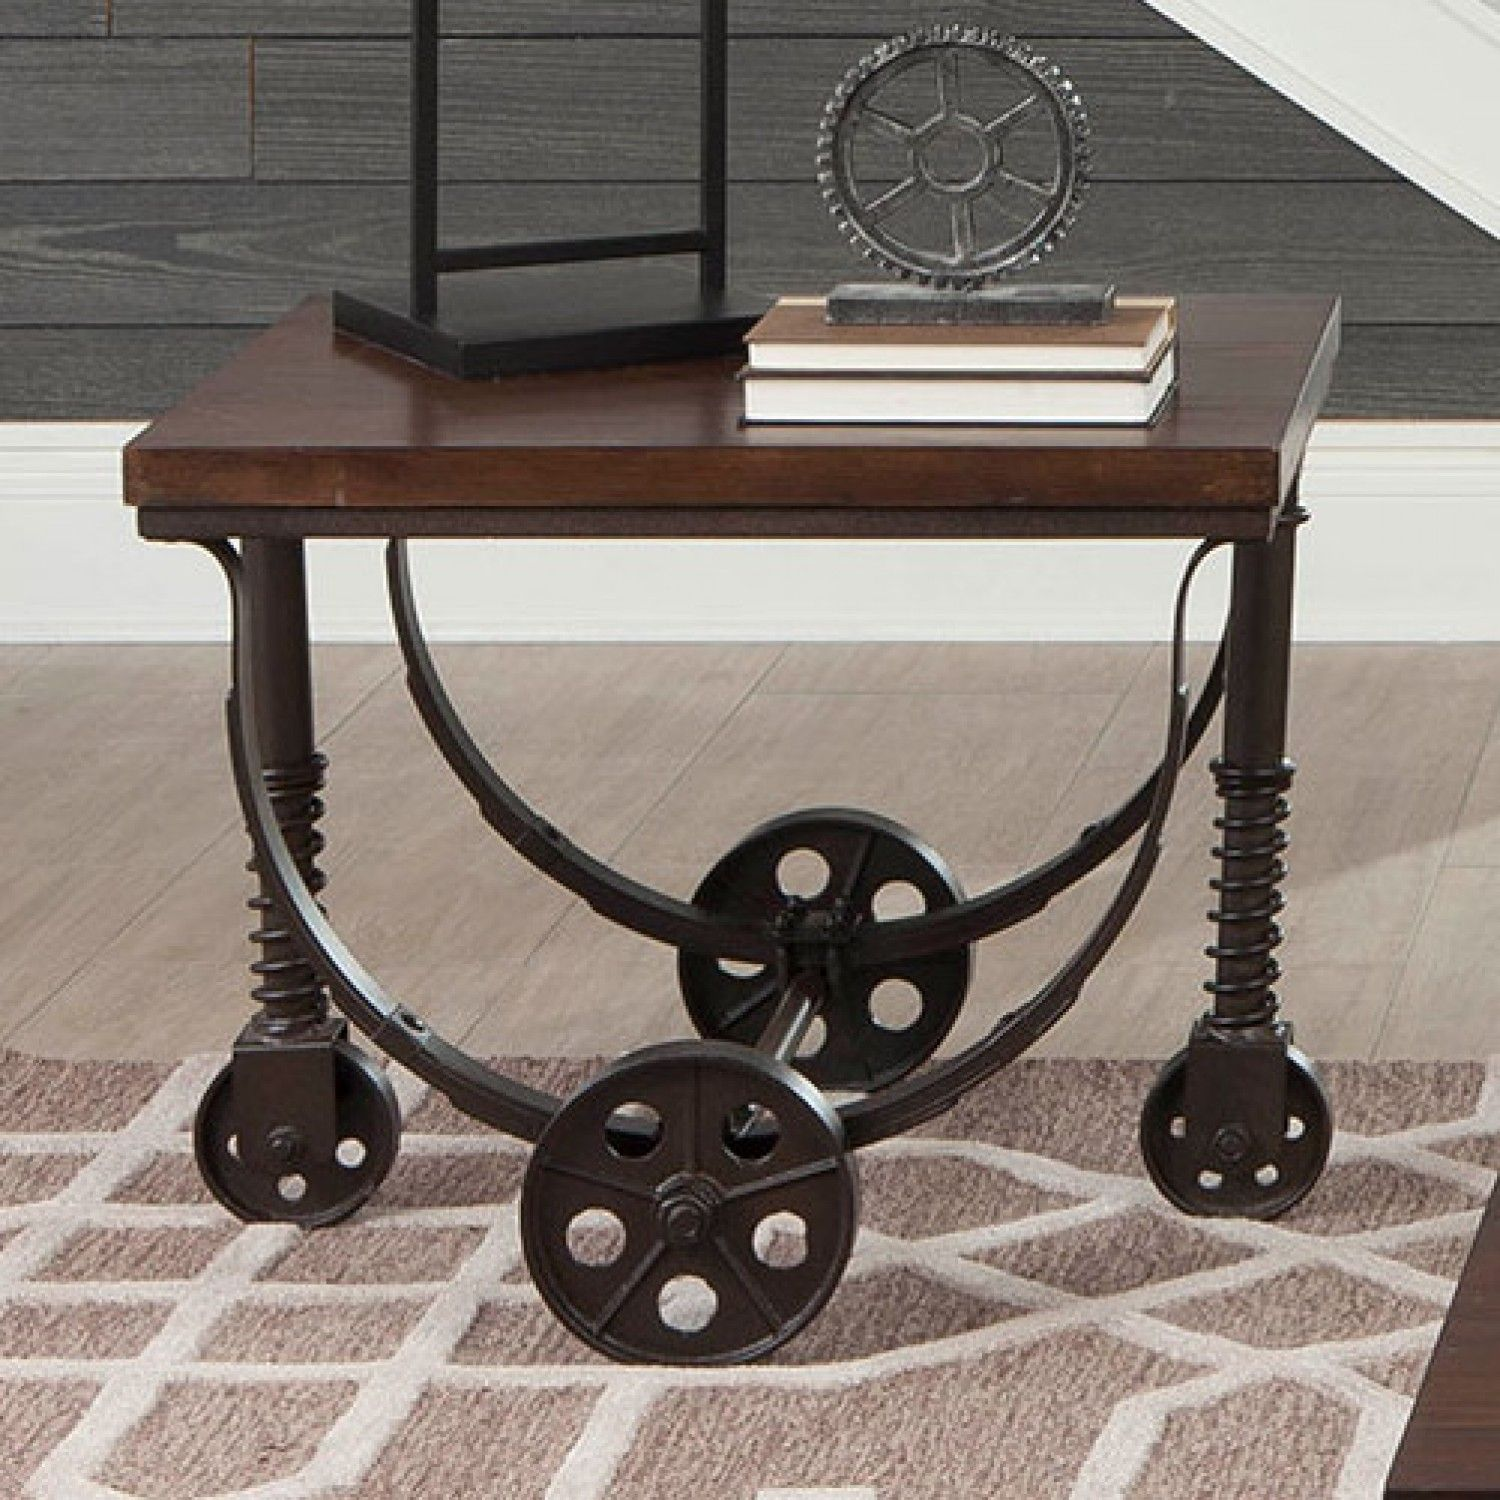 Coaster 704977 End Table in Chestnut/Rustic Bronze